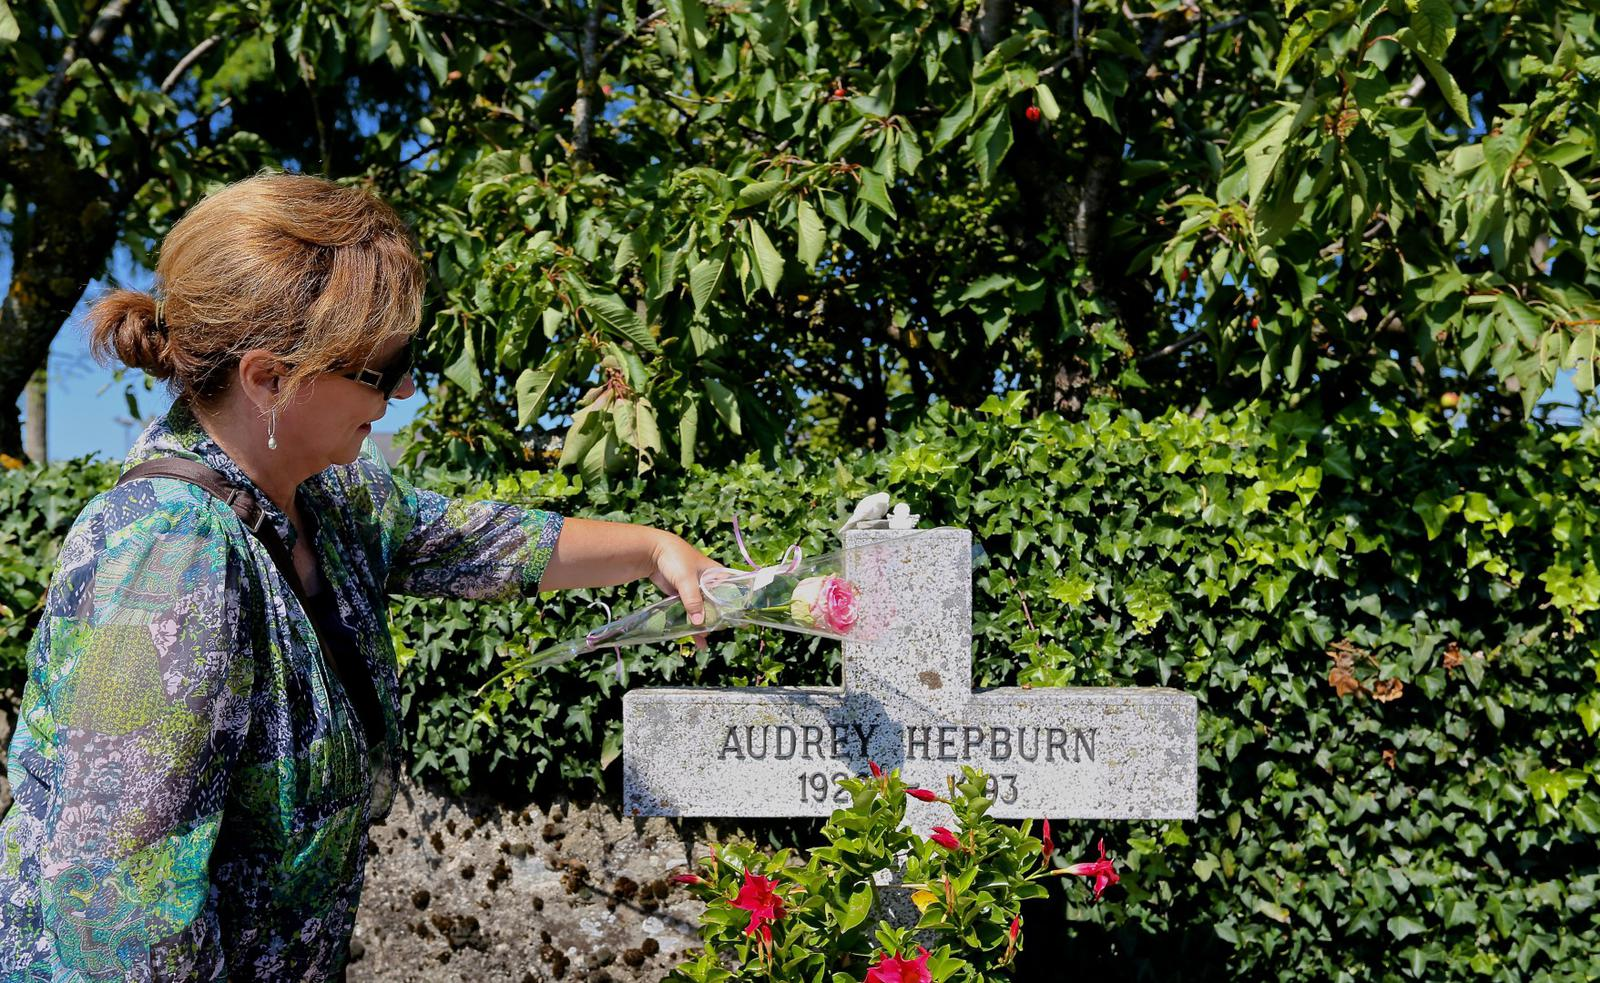 Audrey Hepburn's grave in Switzerland